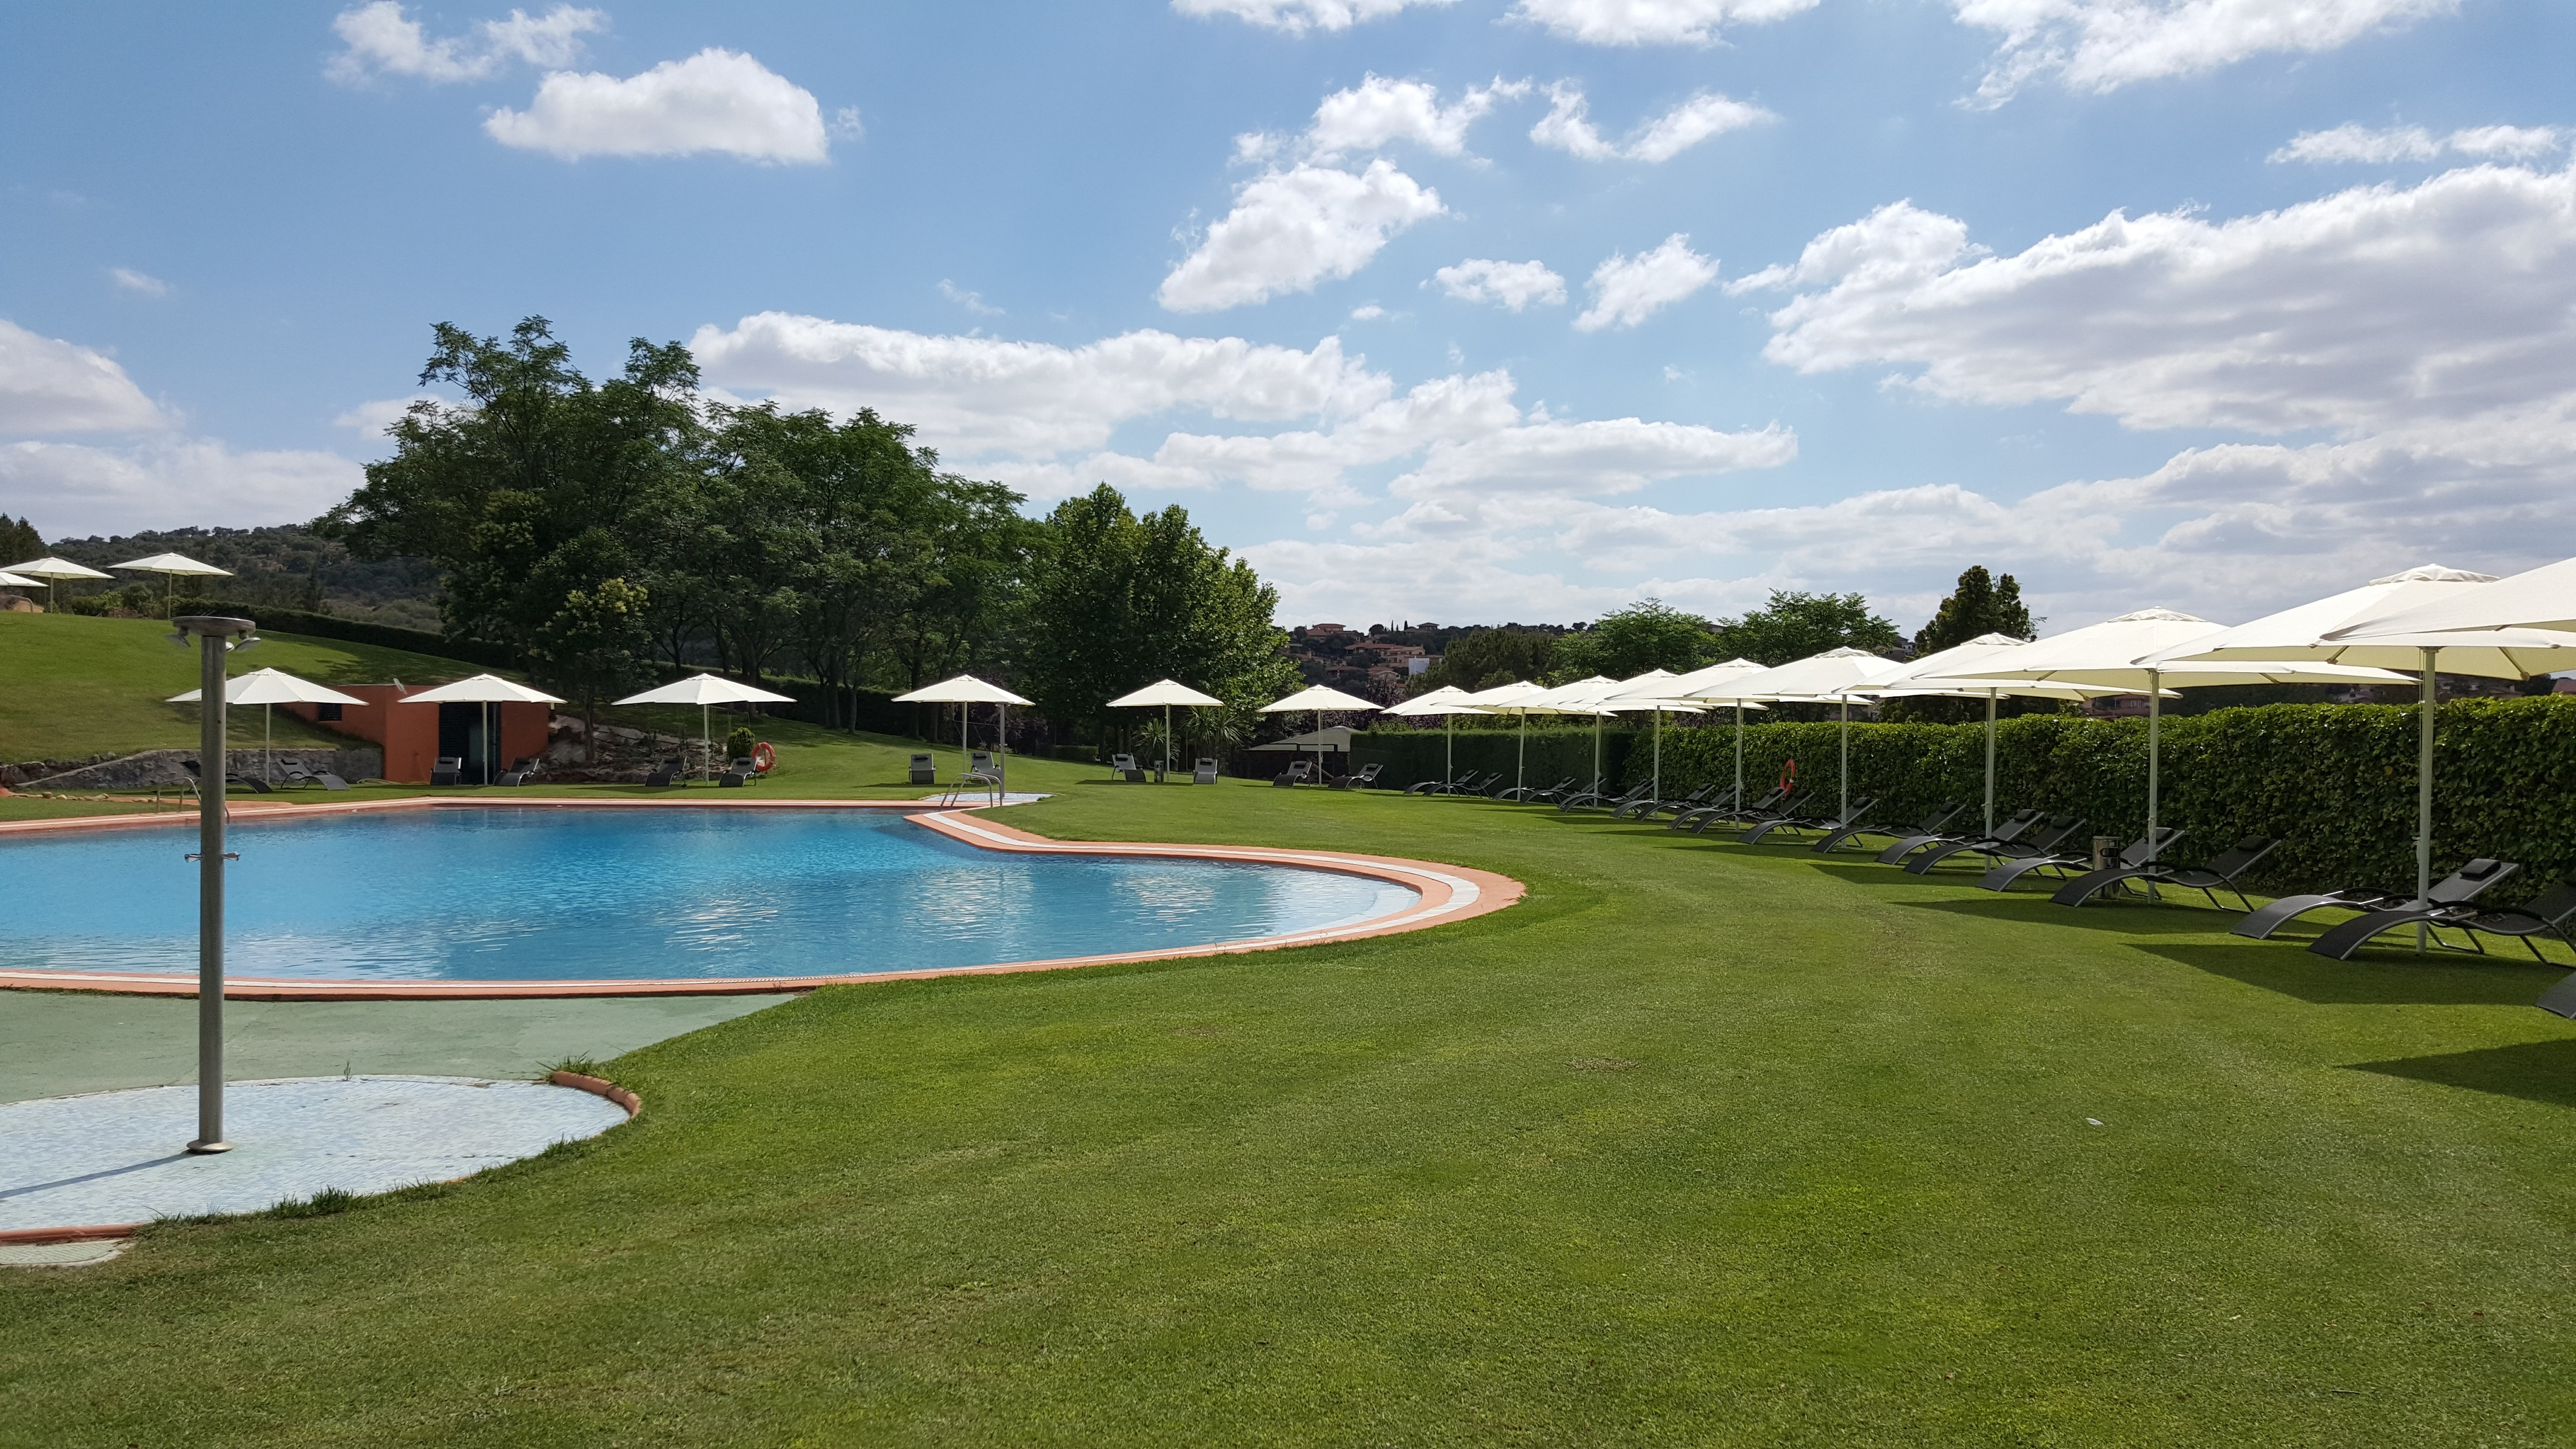 Apertura de piscinas temporada 2016 norba club de golf for Piscinas caceres